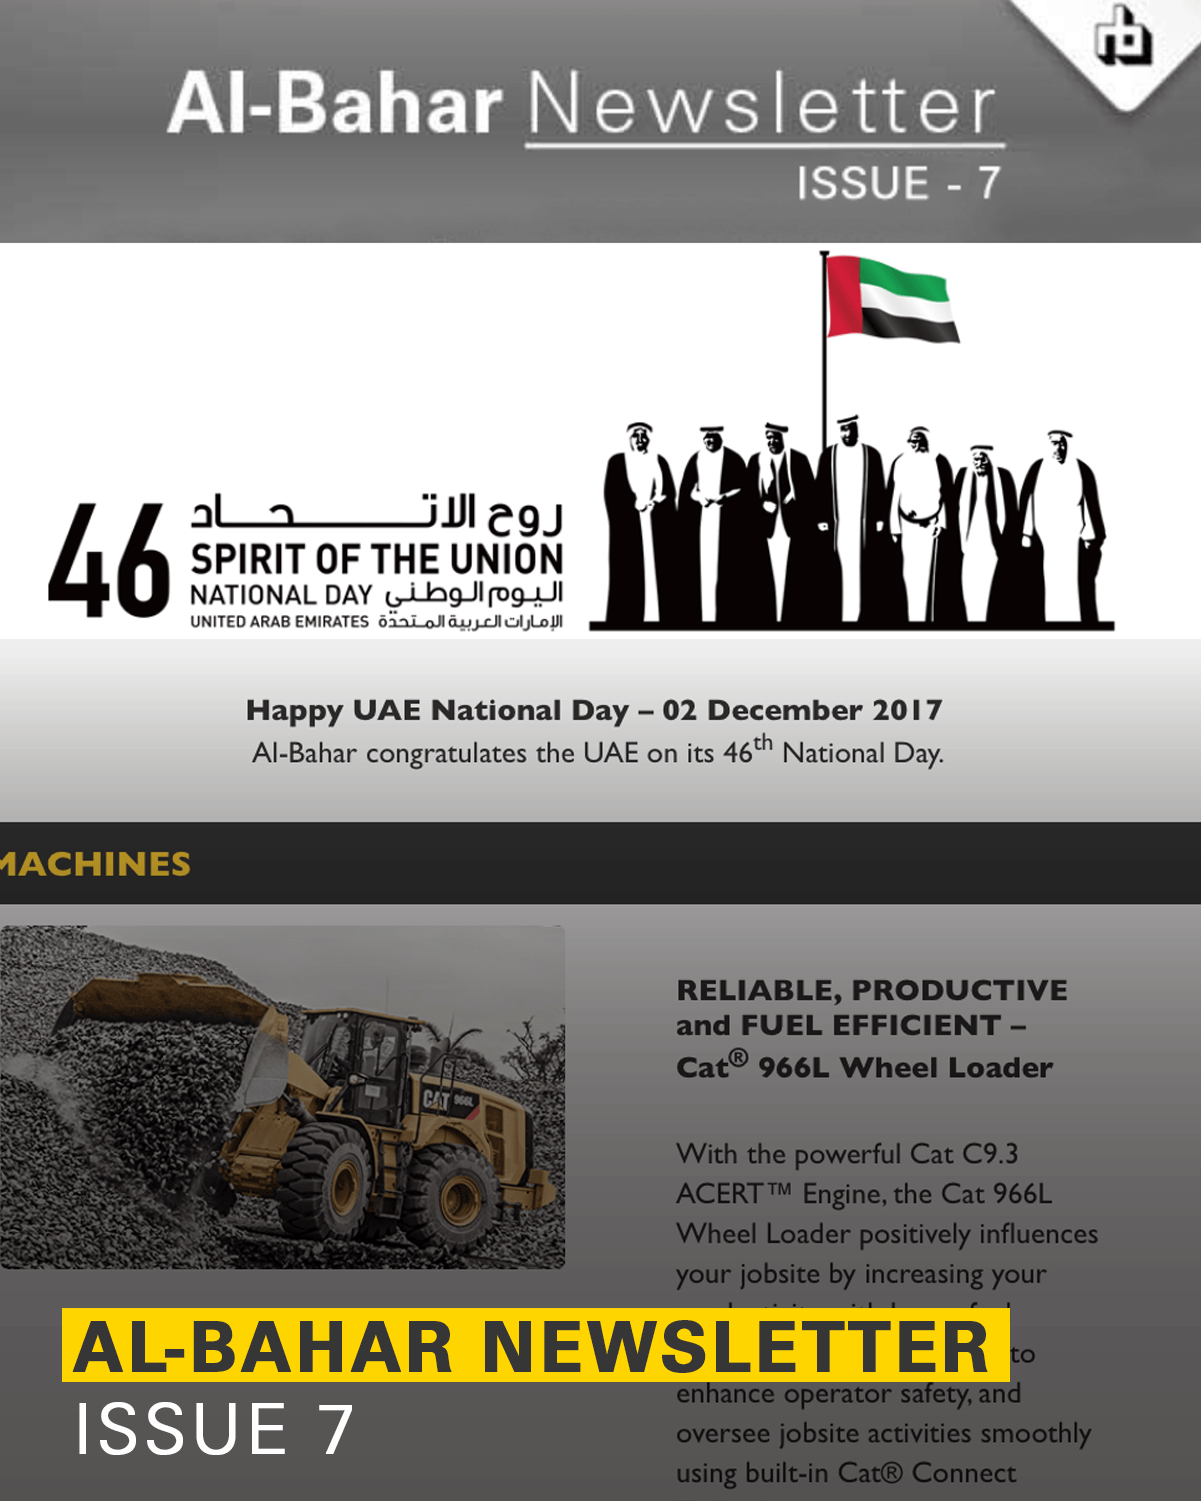 al-bahar-2017-newsletter-issue-7